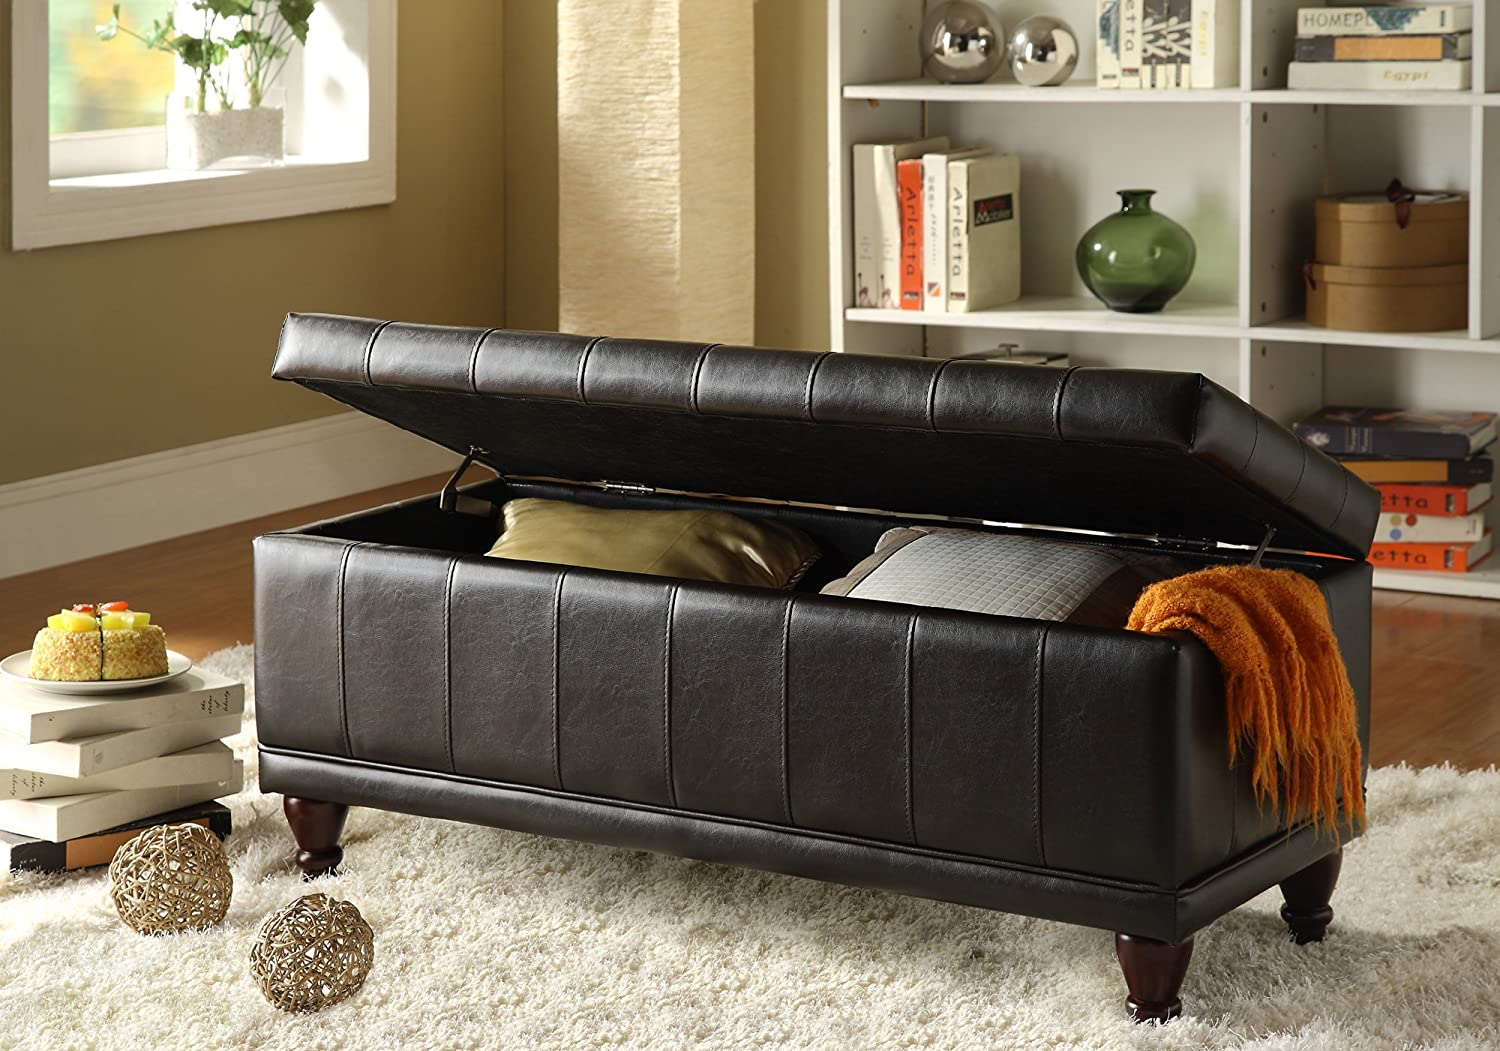 Amazon.com: Homelegance 4730PU Lift Top Storage Bench With Tufted Accents,  Dark Brown Faux Leather: Kitchen U0026 Dining